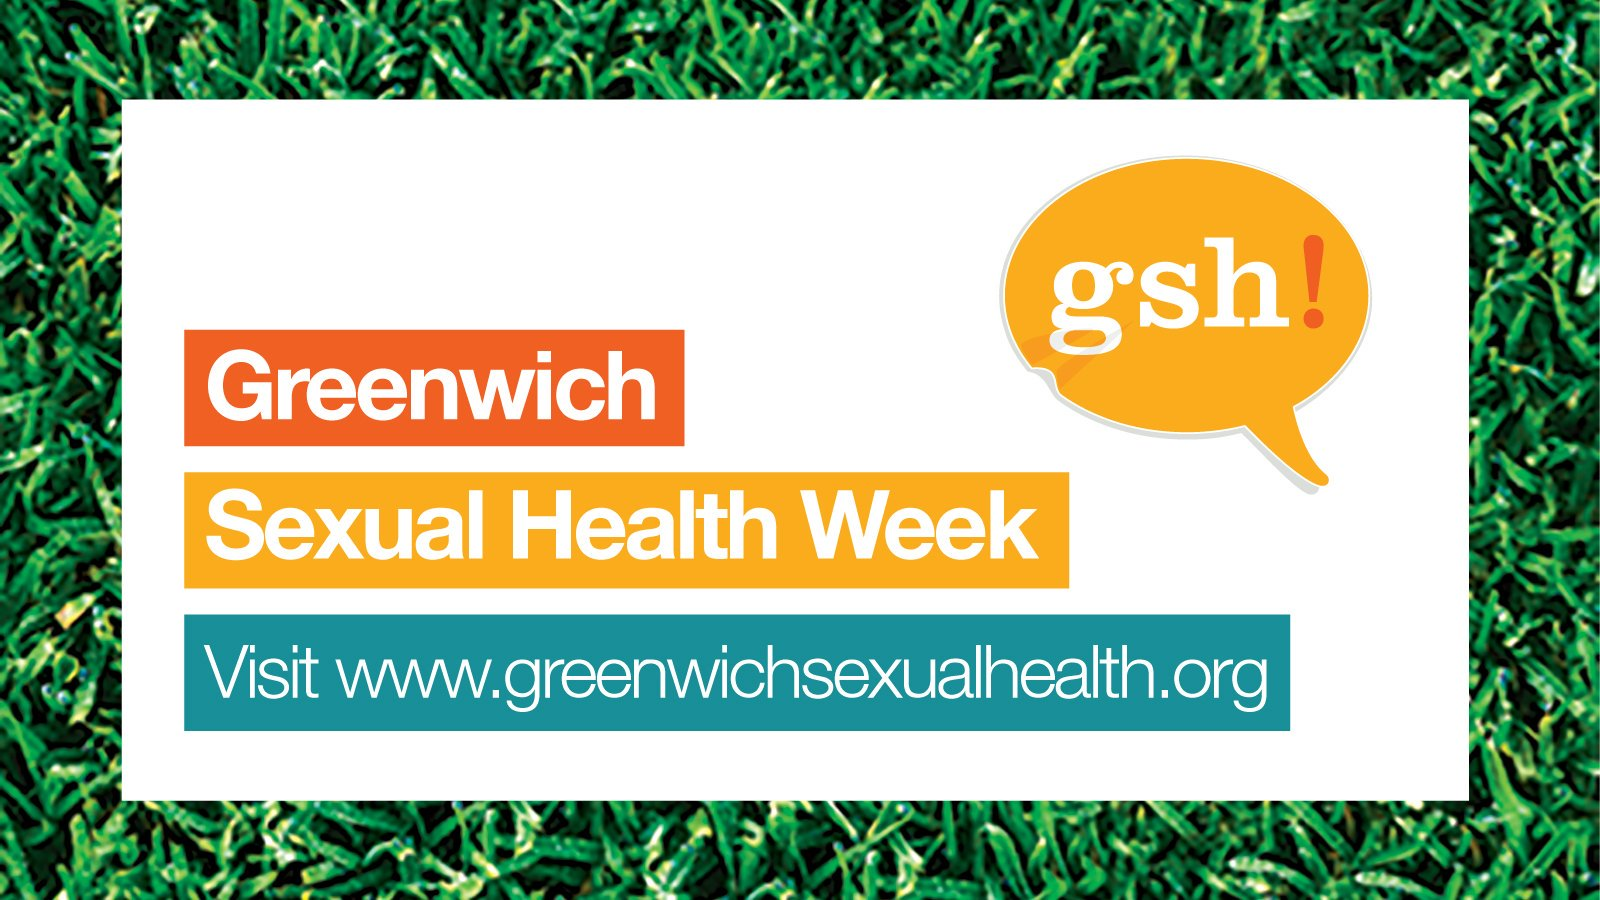 Greenwich Sexual Health Week